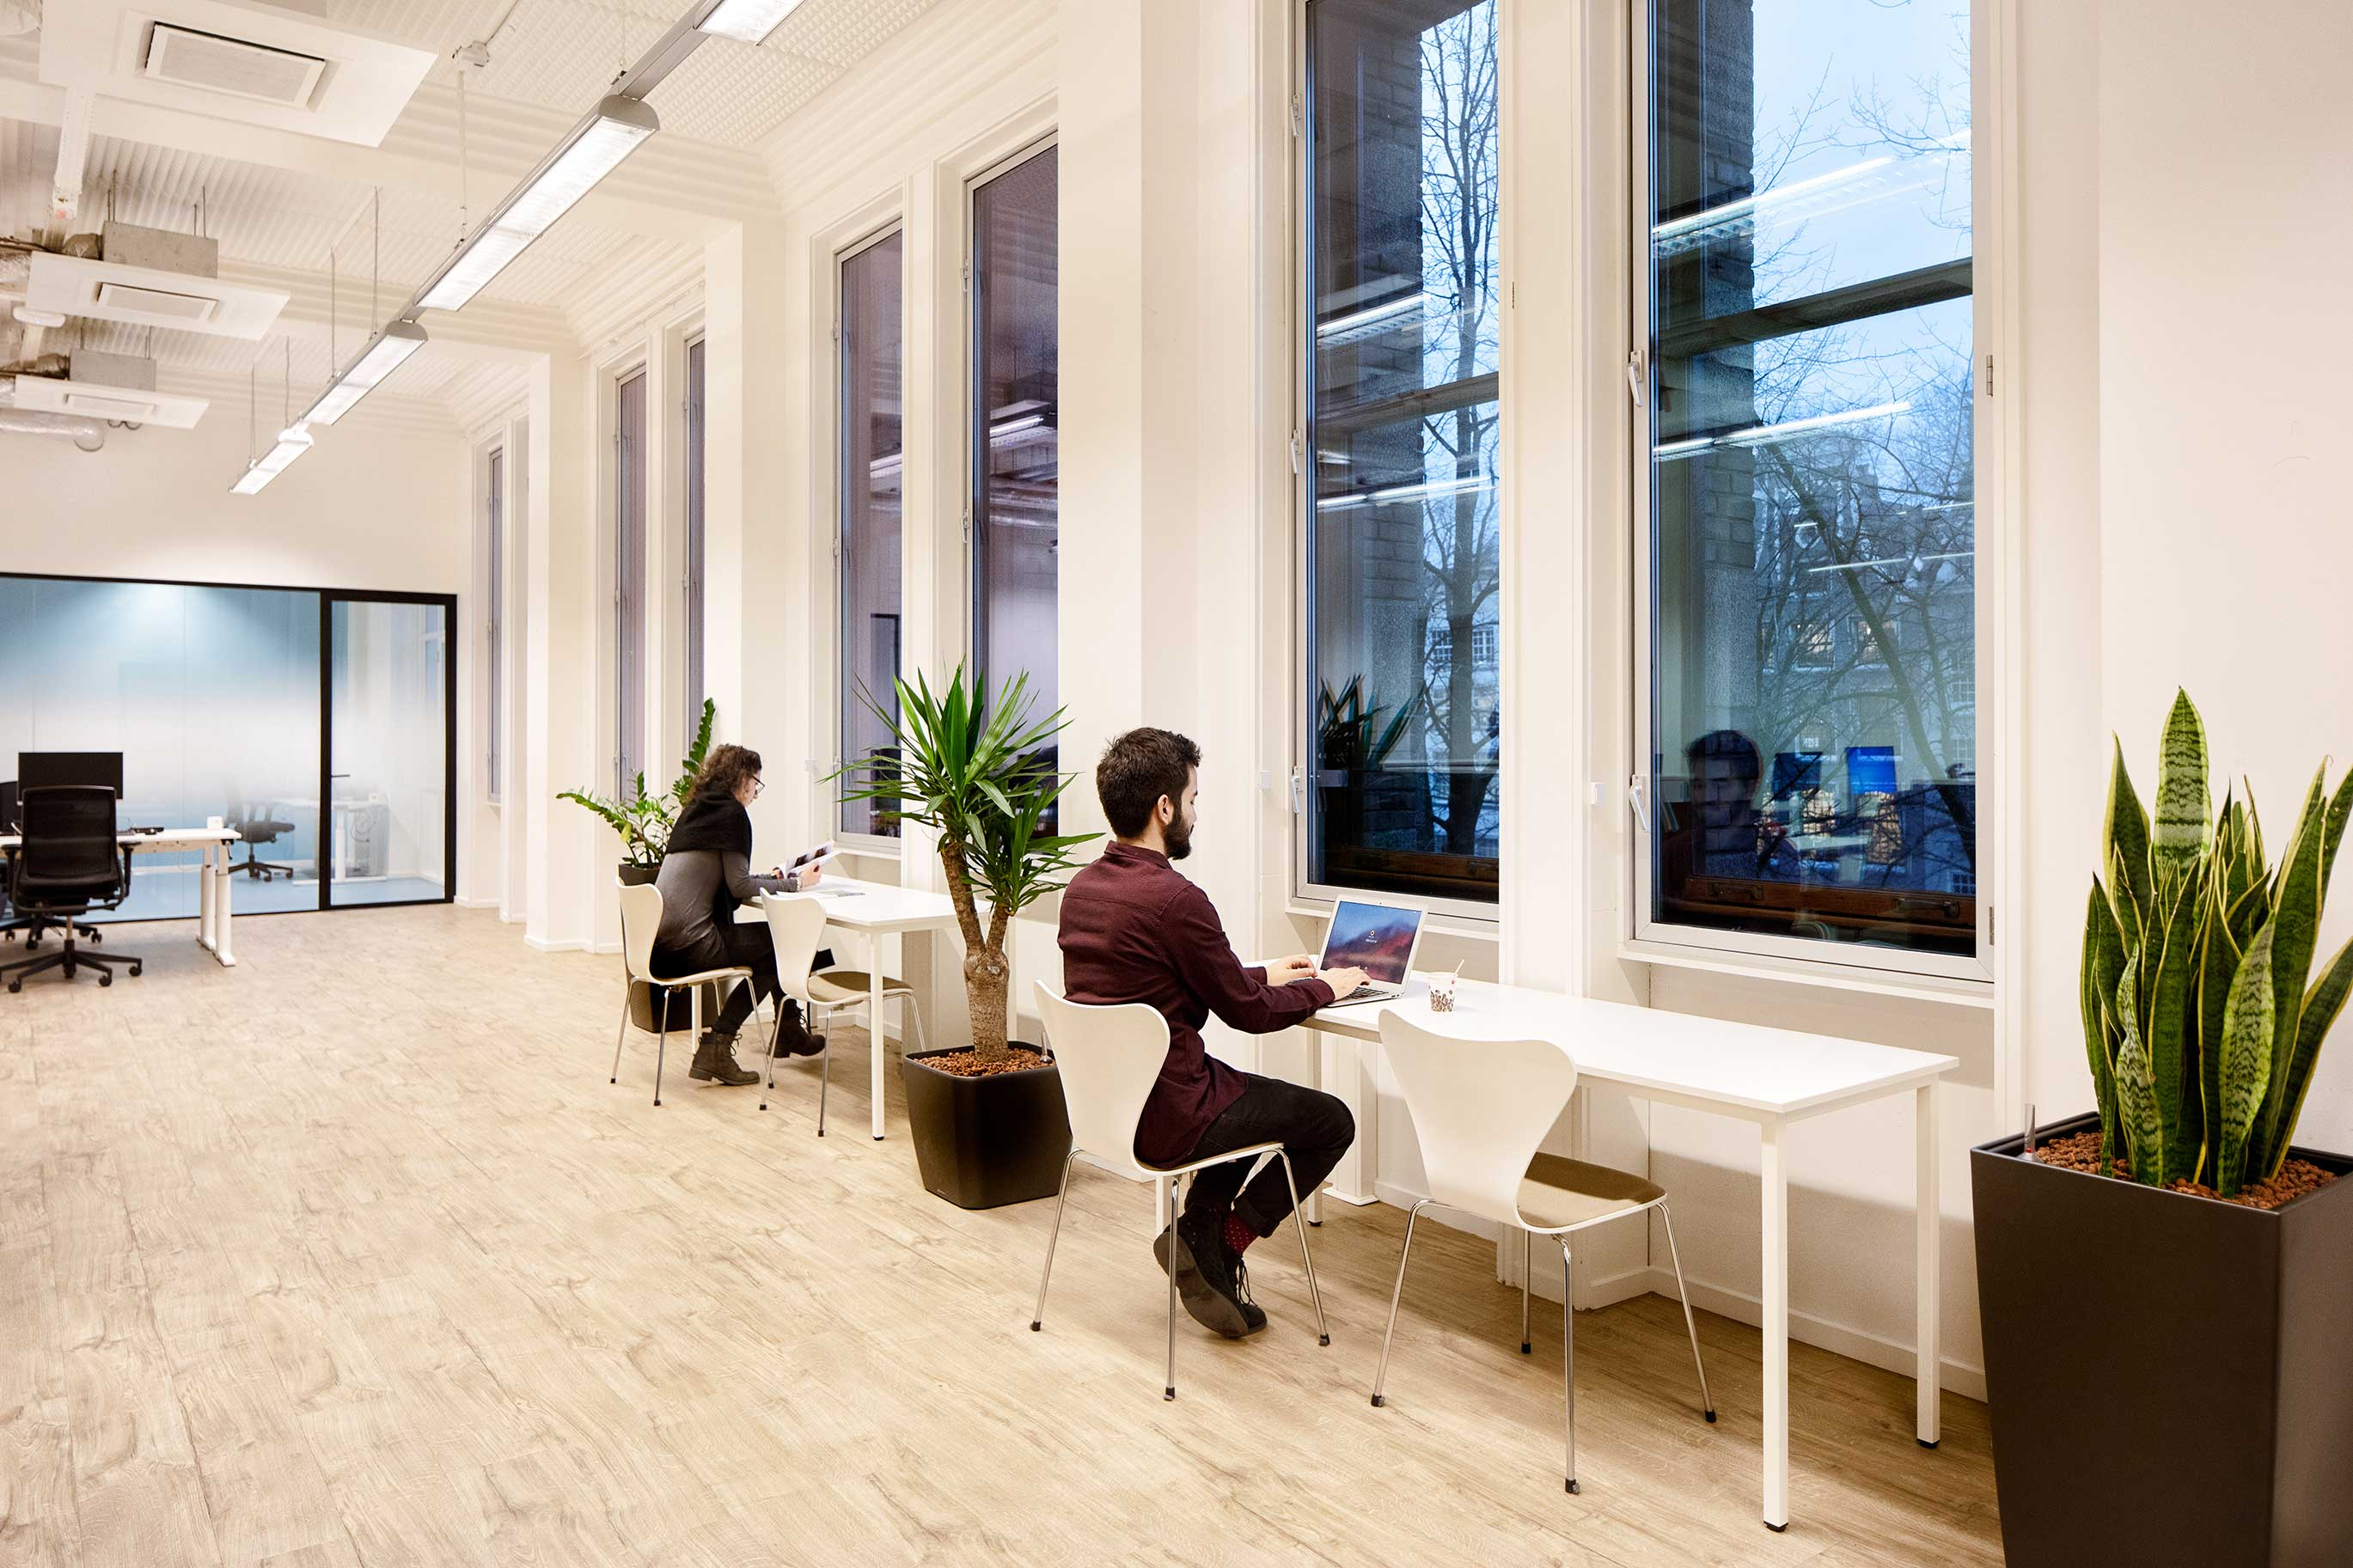 Workplace designed by Akka Architects